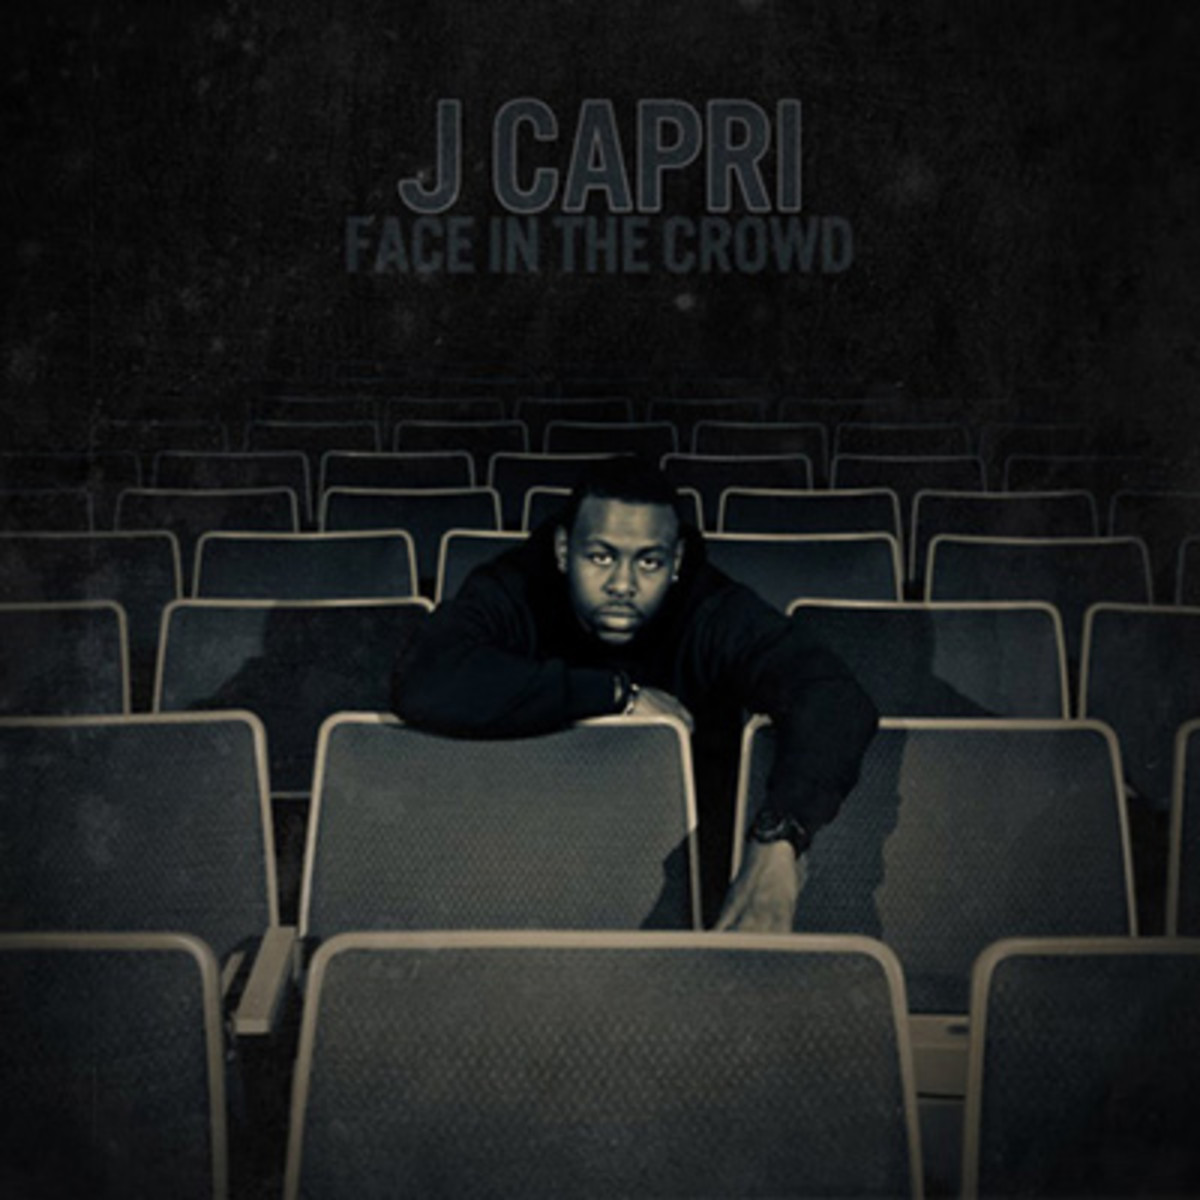 j-capri-face-in-the-crowd.jpg